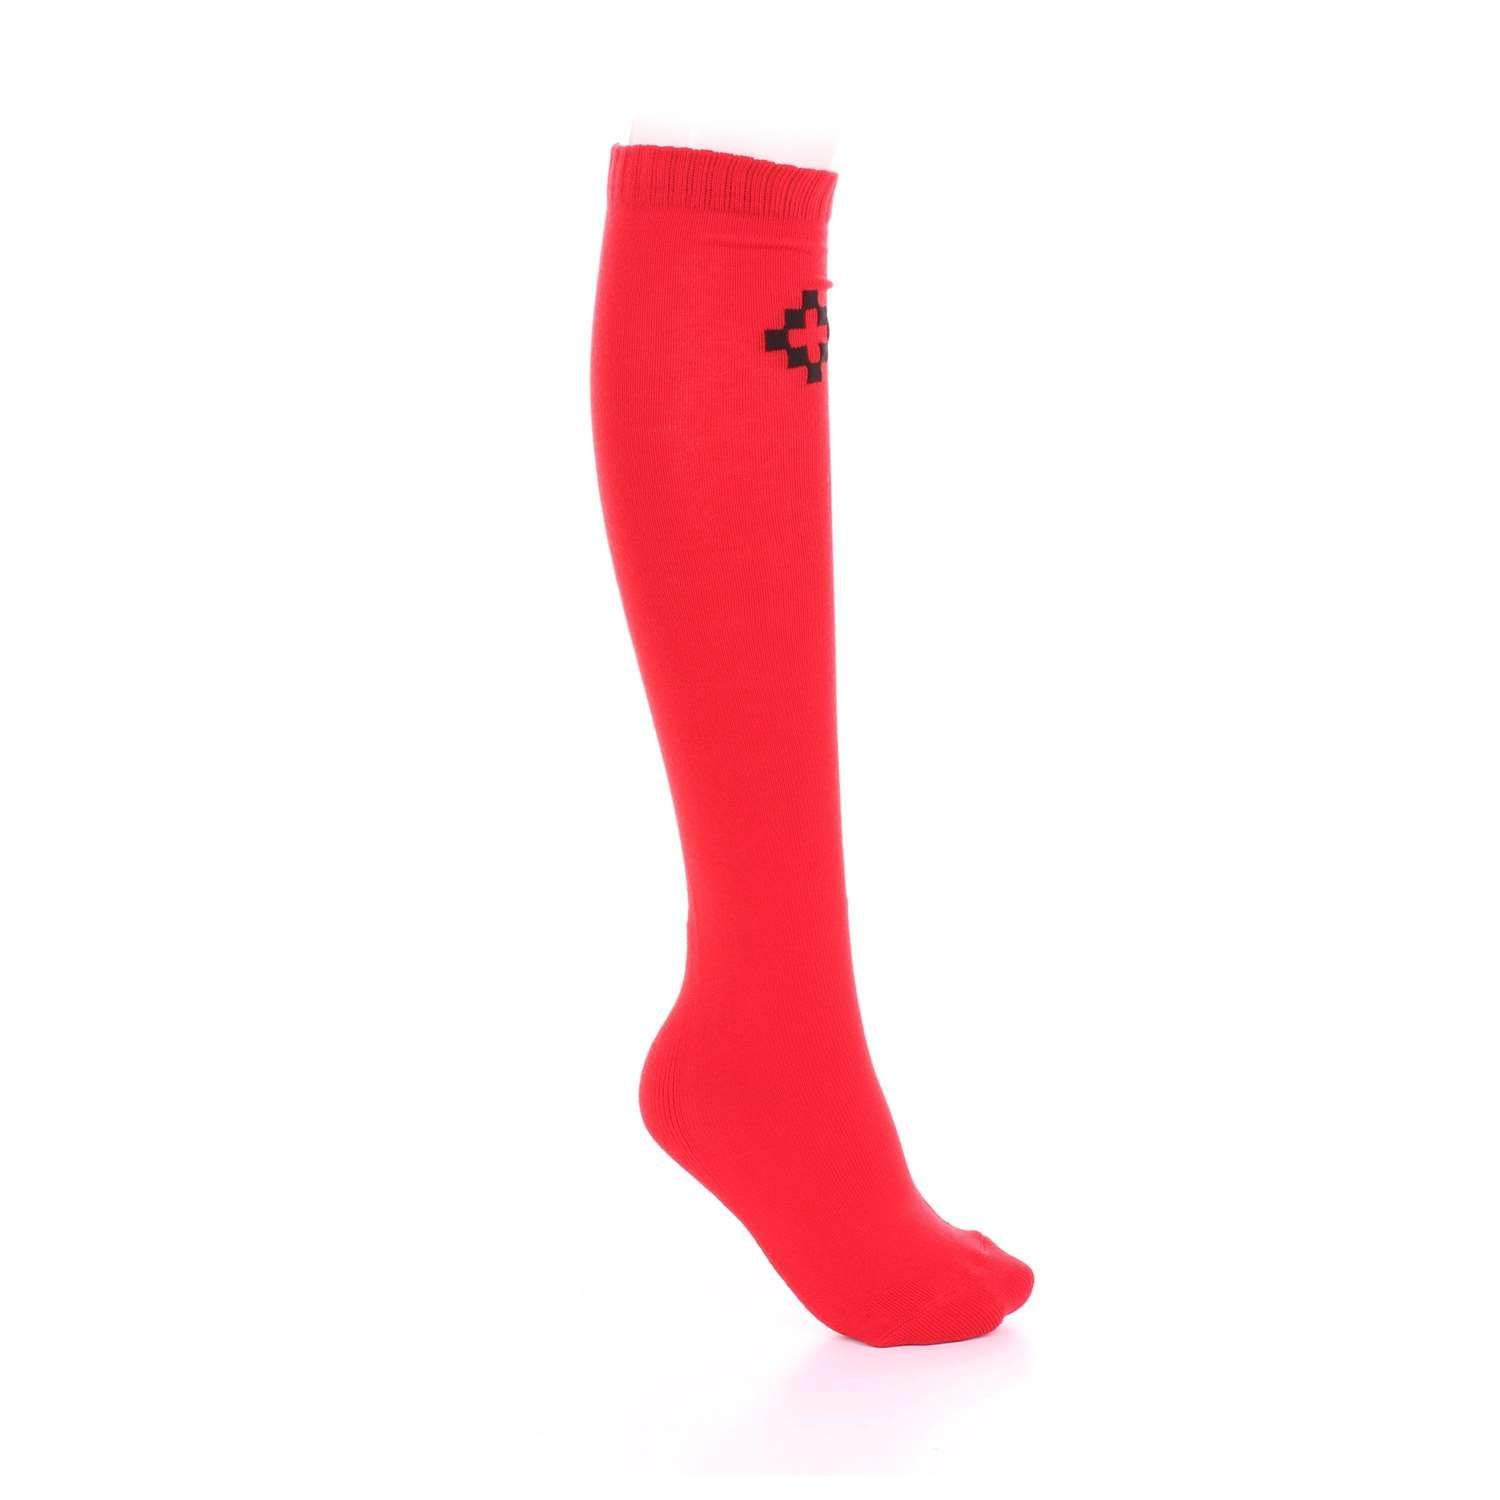 Marcelo Burlon Mens CMRA002S17096129RRED Red Cotton Socks